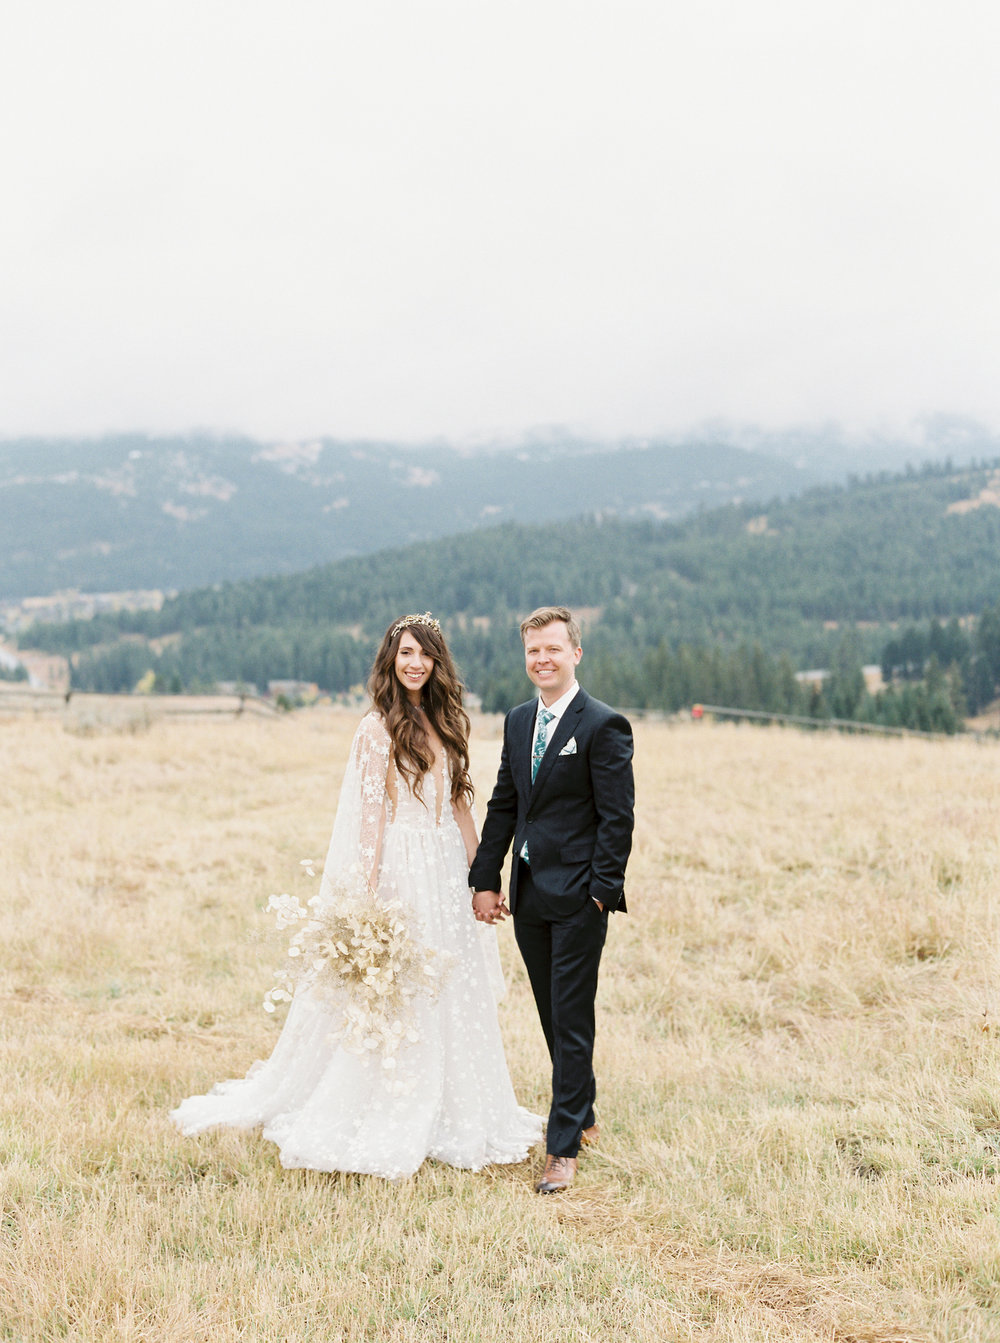 A Montata Mountain Top Wedding with Celestial Details, A Galia Lava Gown and Bespoke Tilly Thomas Lux Crown | Image by Rebecca Hollis Photography